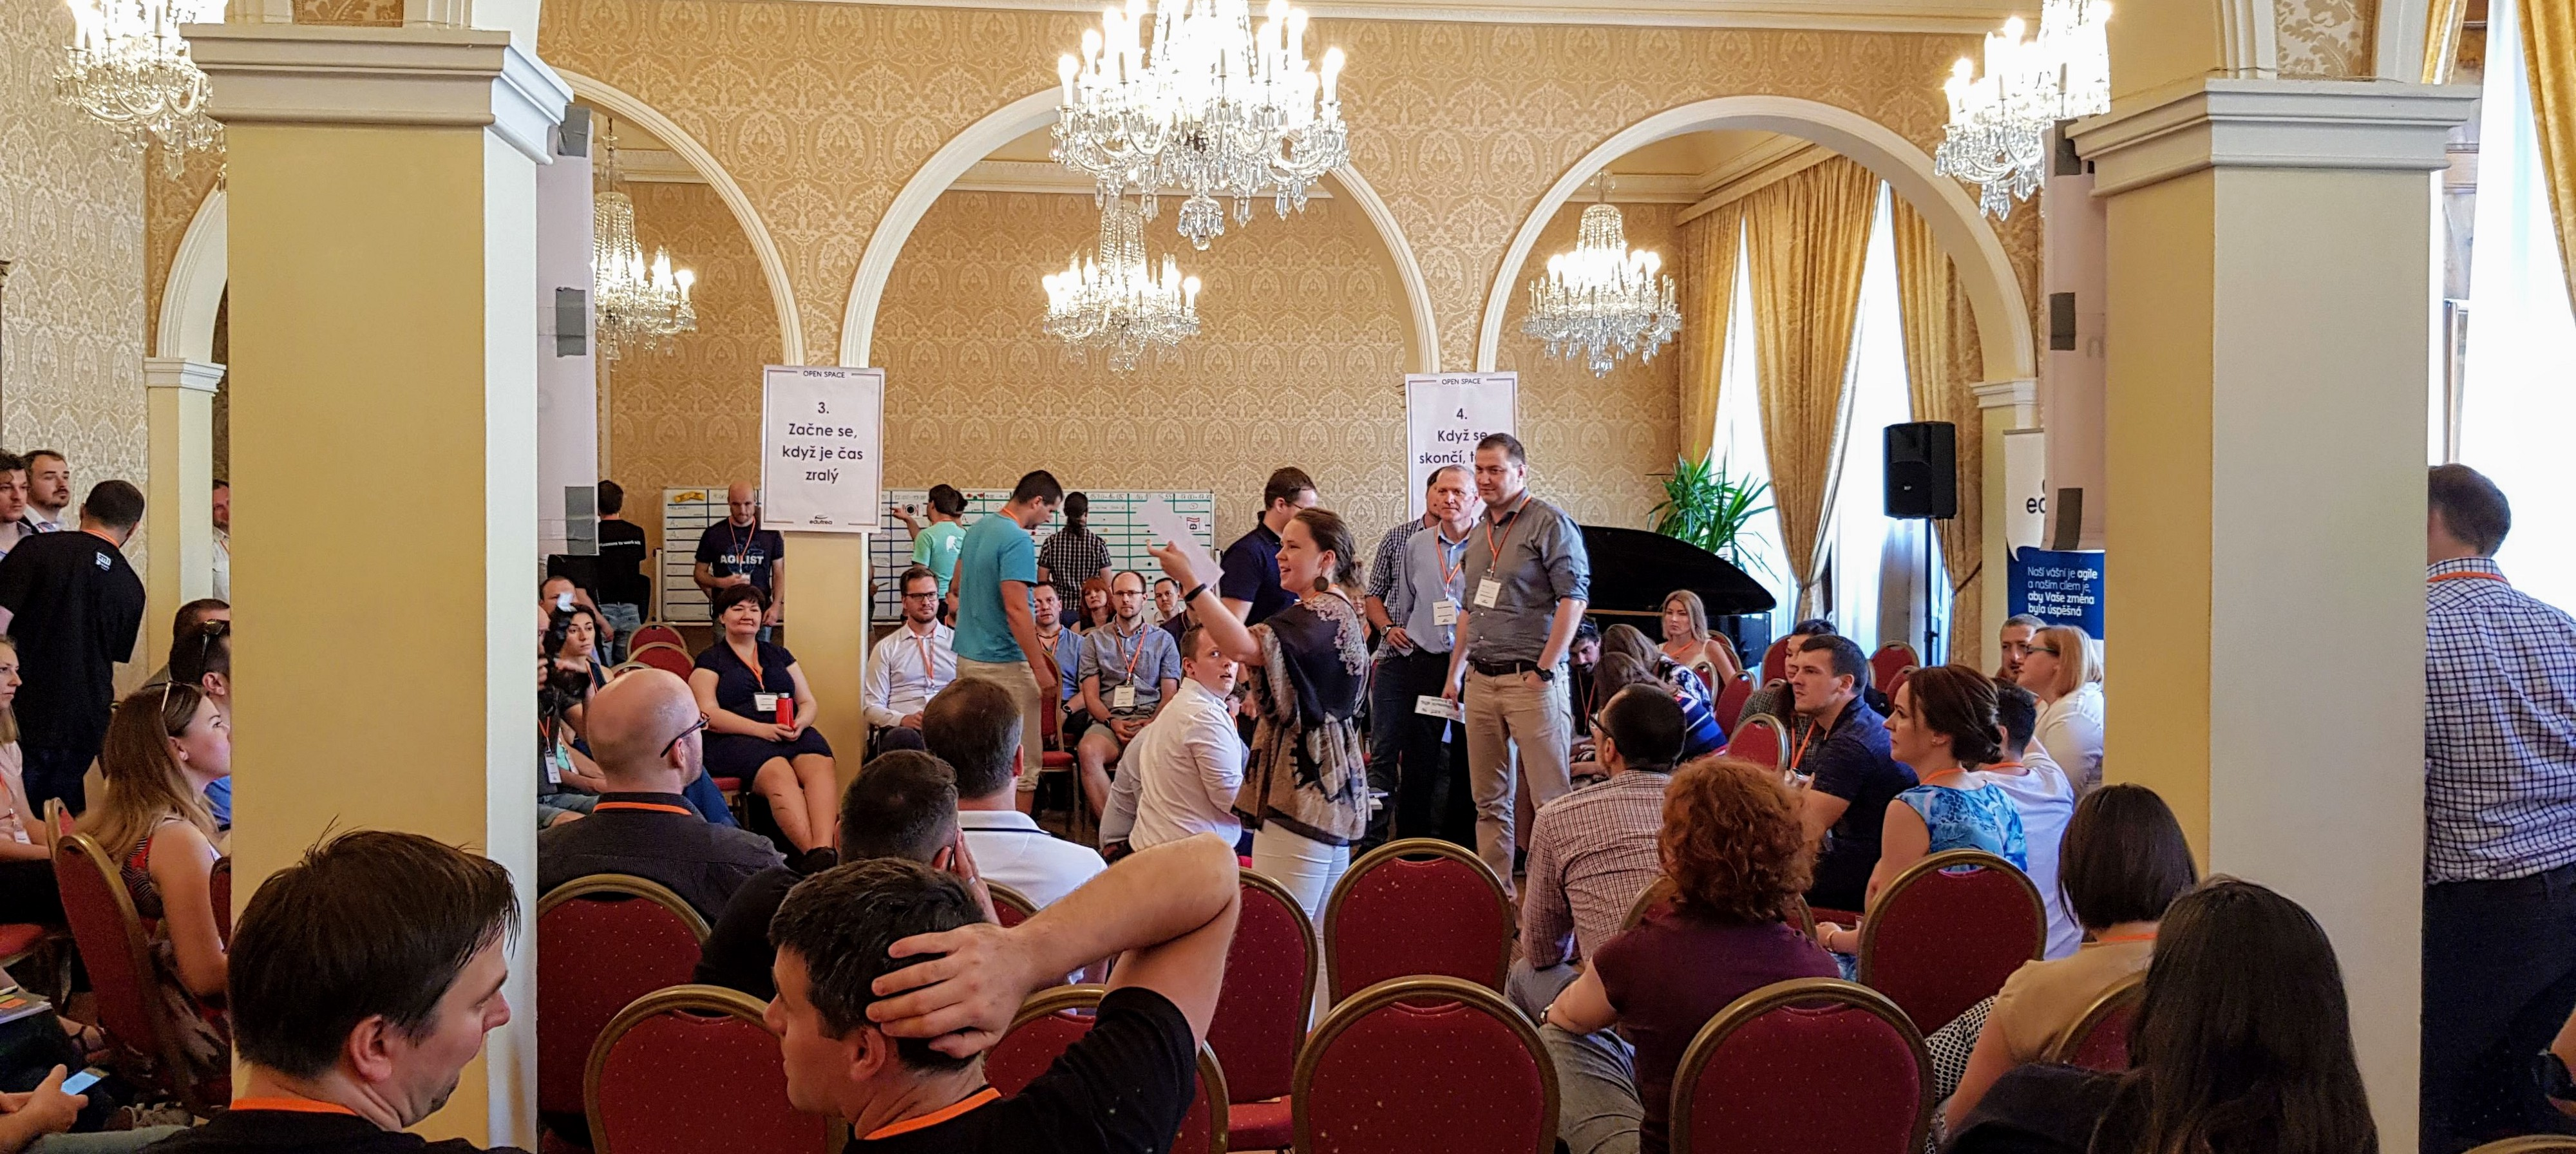 Open Space inAgile uncoference from May 2019, Prague—pitch of topics in progress